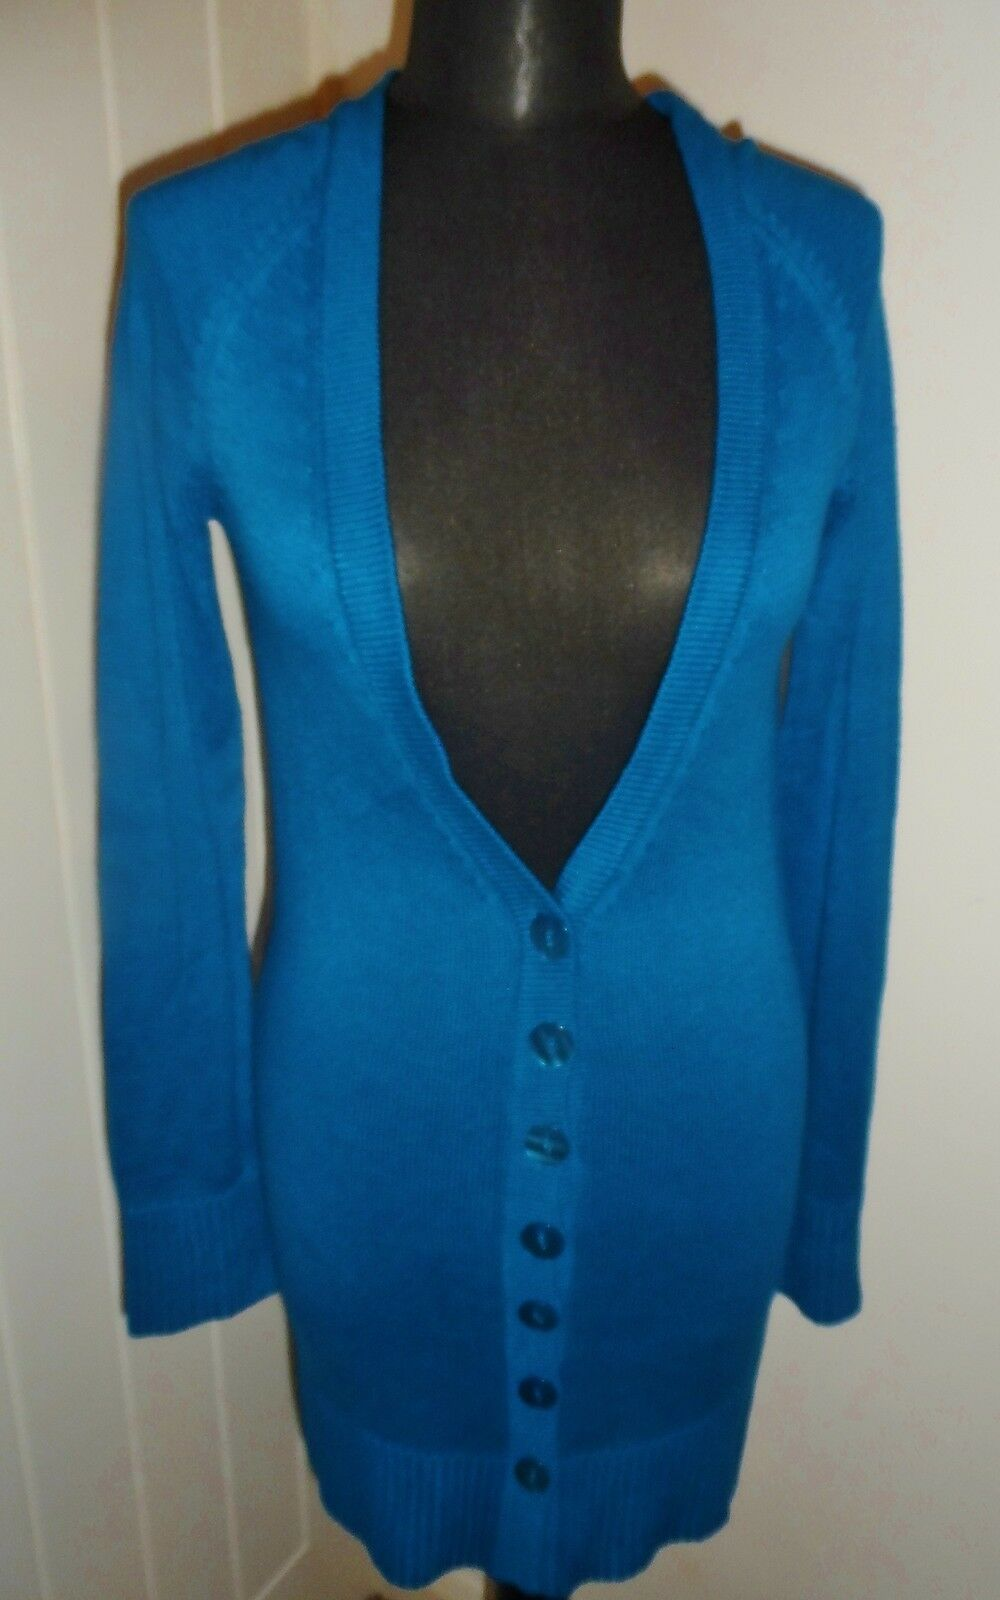 COPPERNOB Teal bluee Bamboo Yarn Long Length Cardigan in Size 10 BNWT